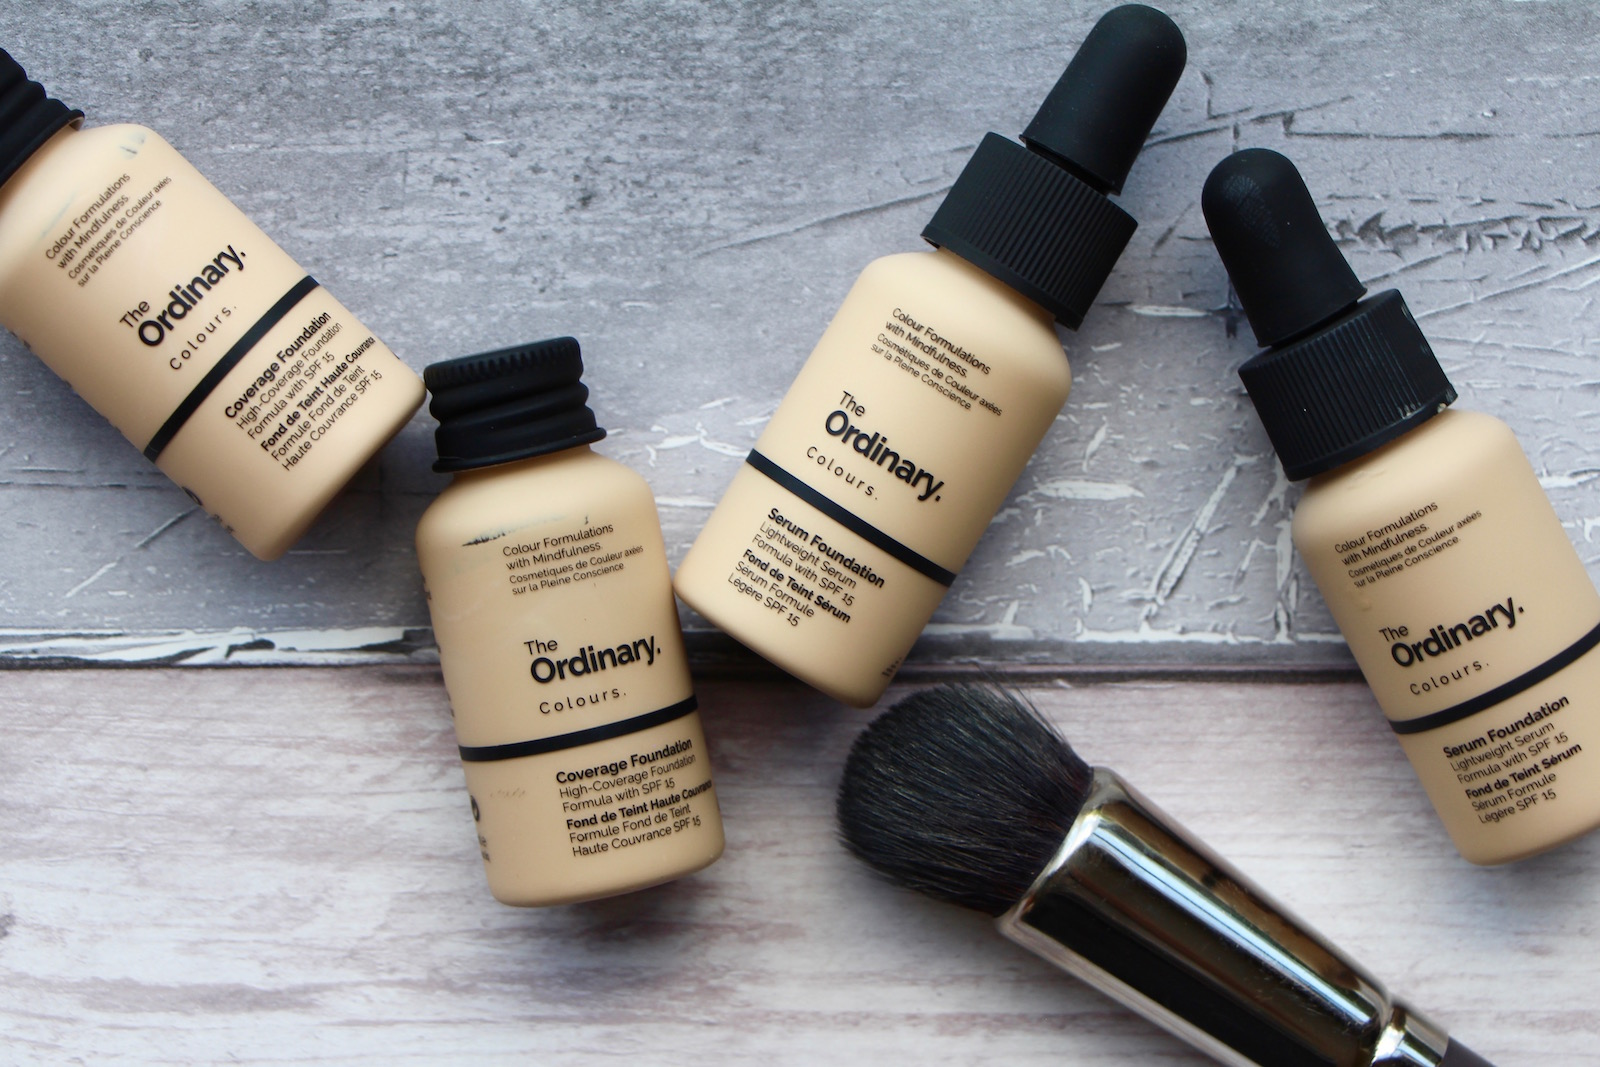 Colour care foundation - The Ordinary Colours Serum And Coverage Foundation Review A Model Recommends